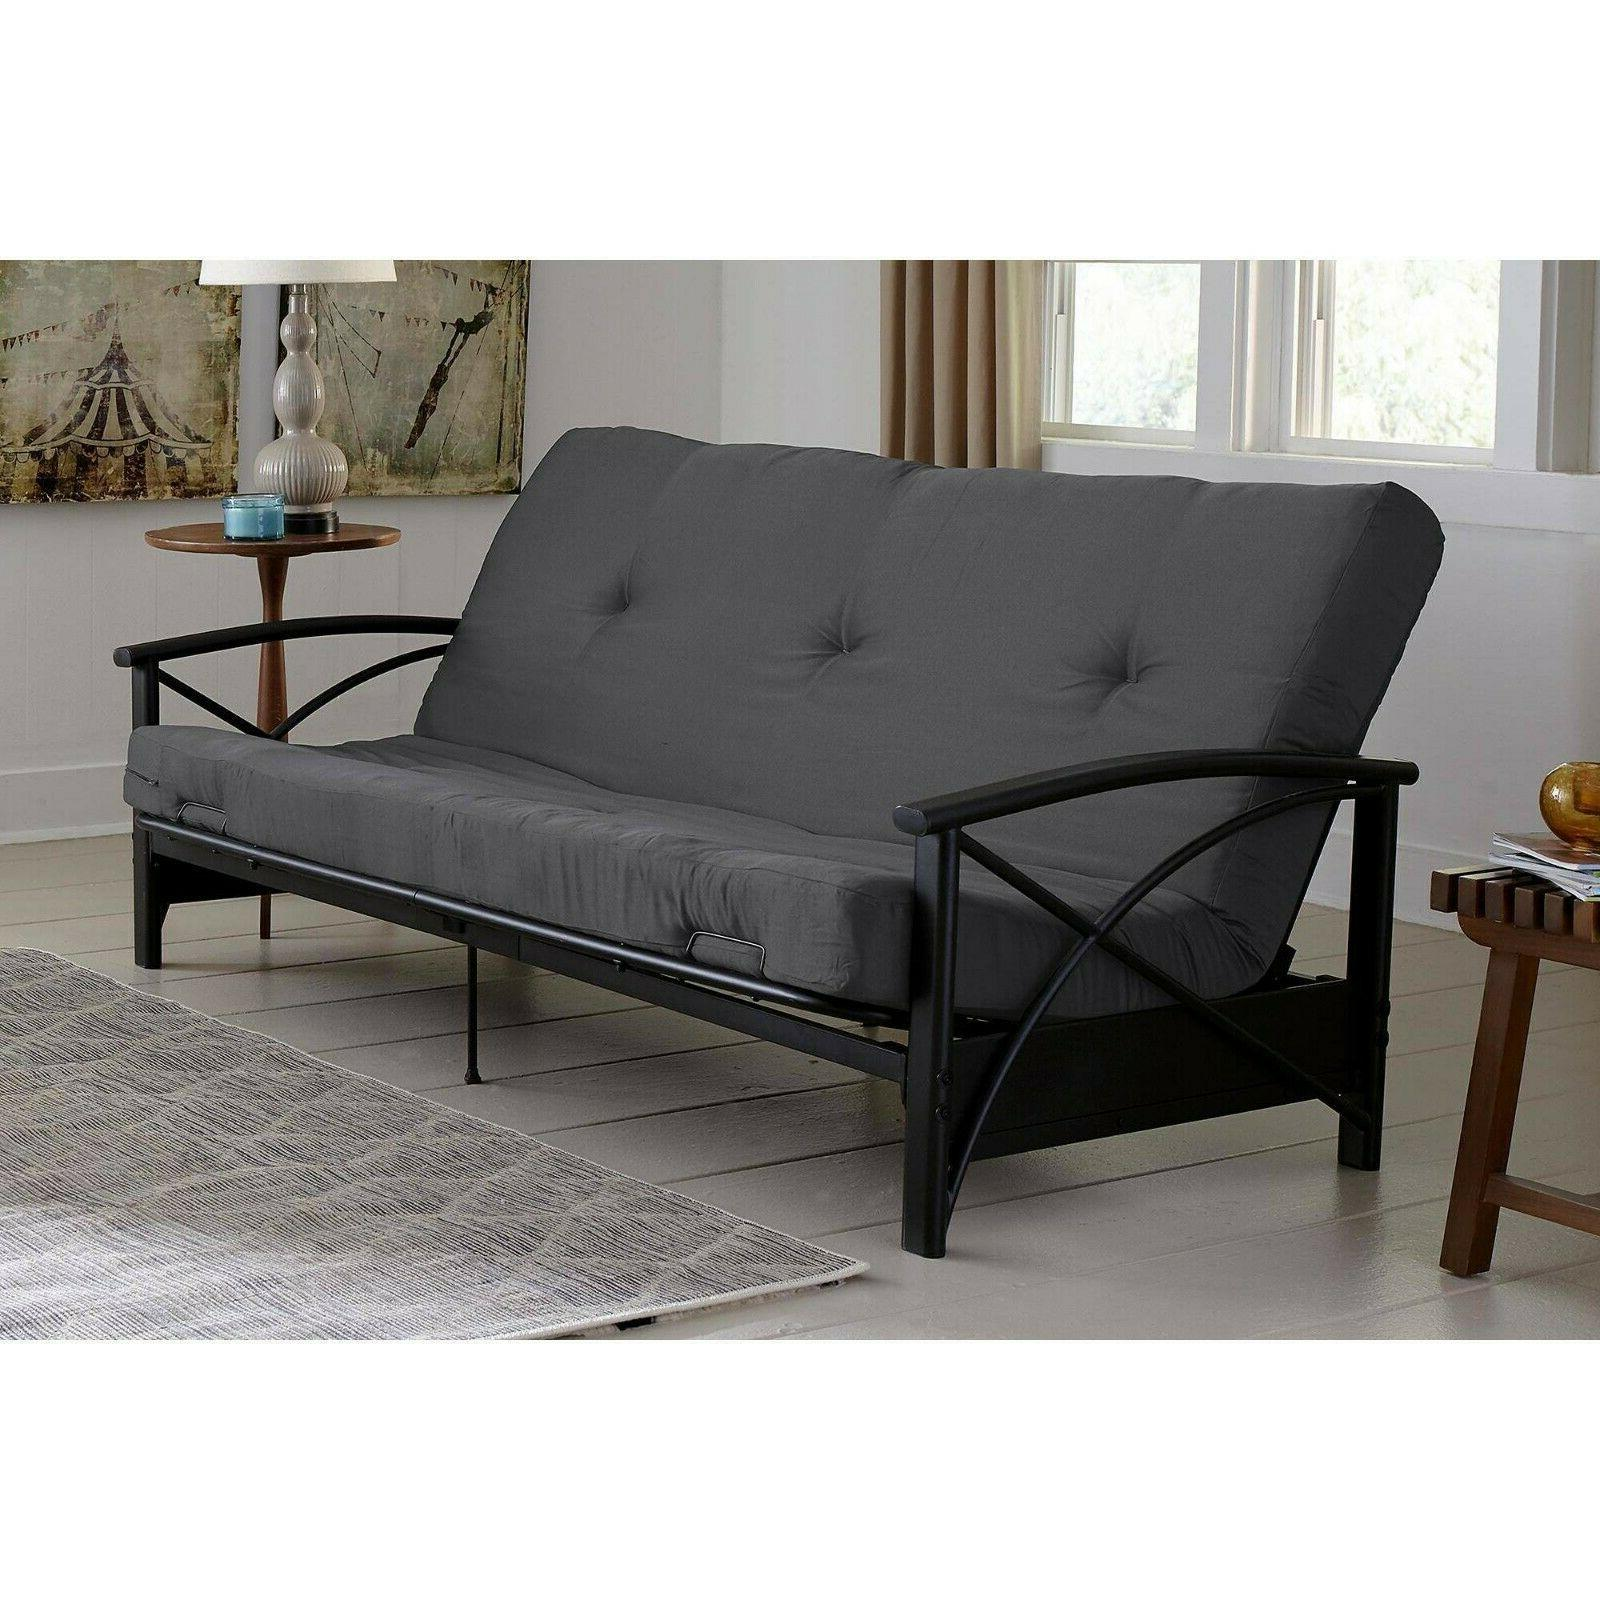 Futon Mattress Spare Room Bed Full Size